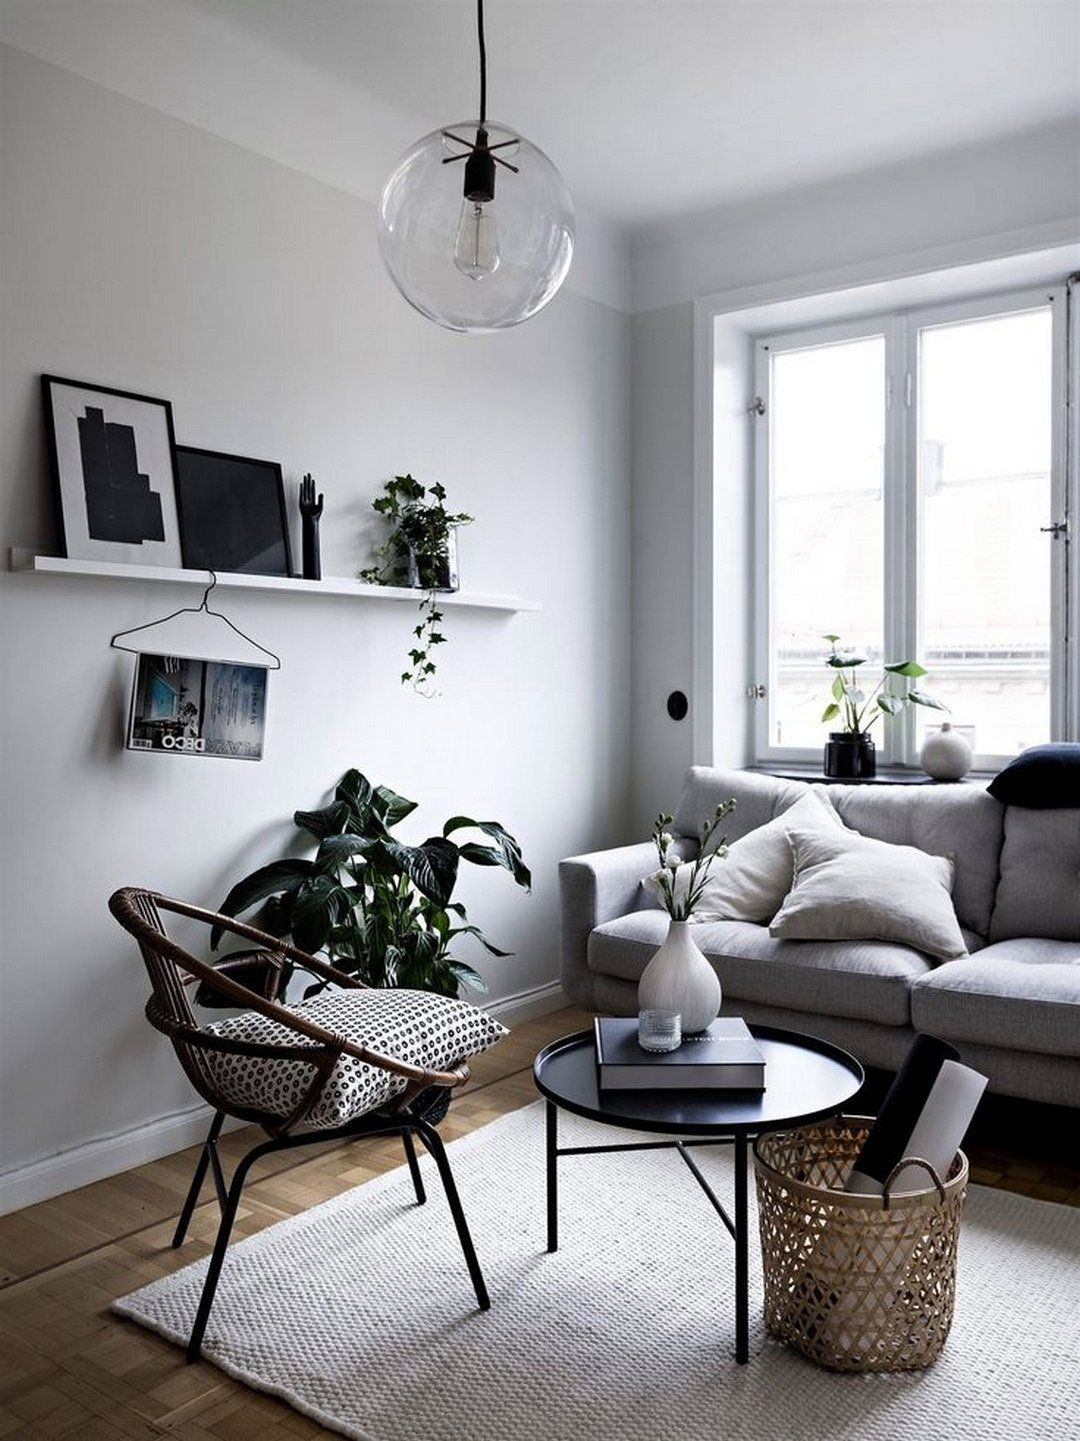 9 Minimalist Living Room Decoration Tips | Pinterest | Room decor ...